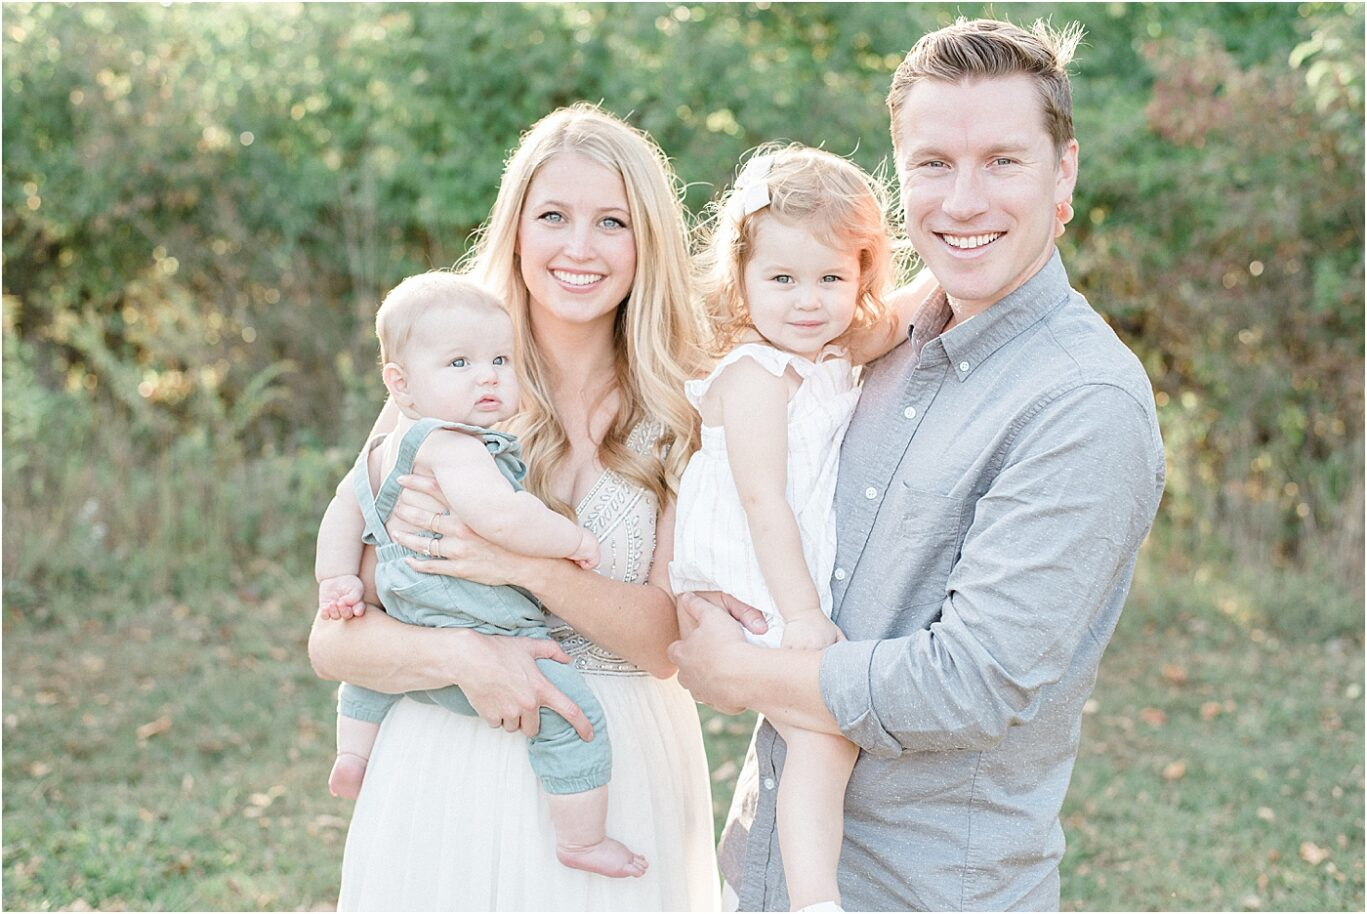 Outdoor family portrait in Noblesville, IN. Photo by family photographer, Lindsay Konopa Photography.